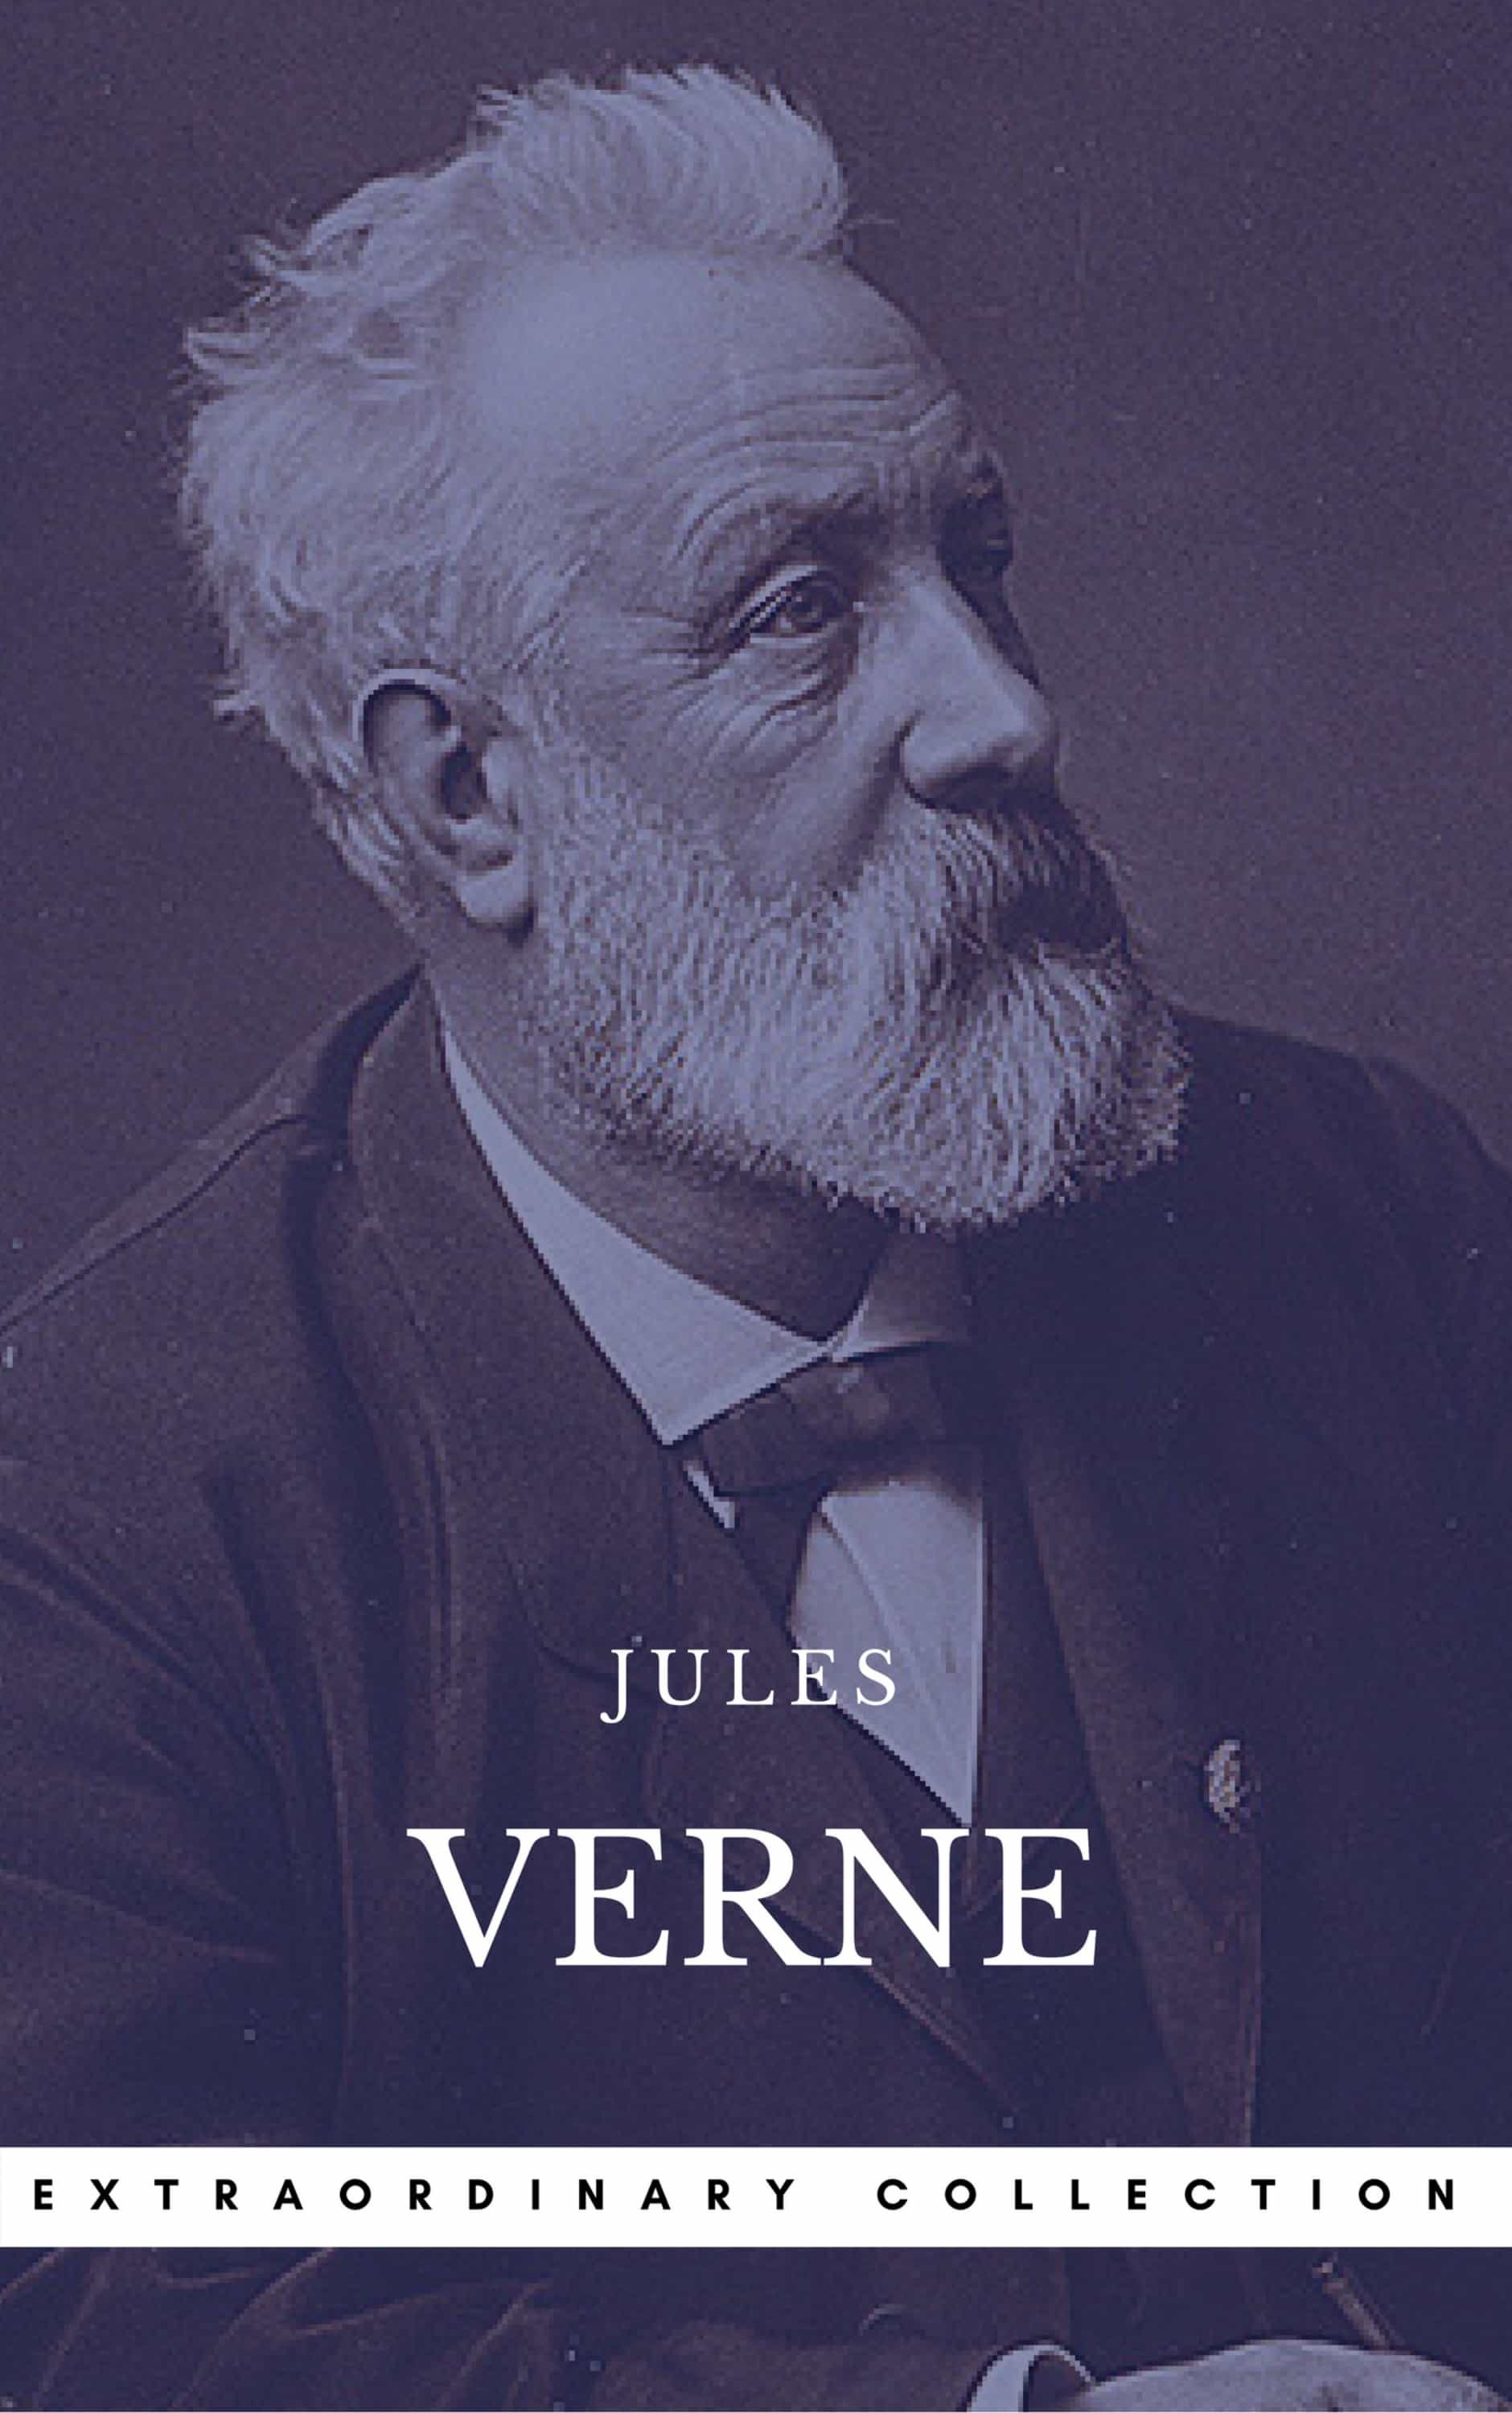 Verne, Jules: The Extraordinary Voyages Collection (book Center) (the Greatest Writers Of All Time)   por Verne Jules epub